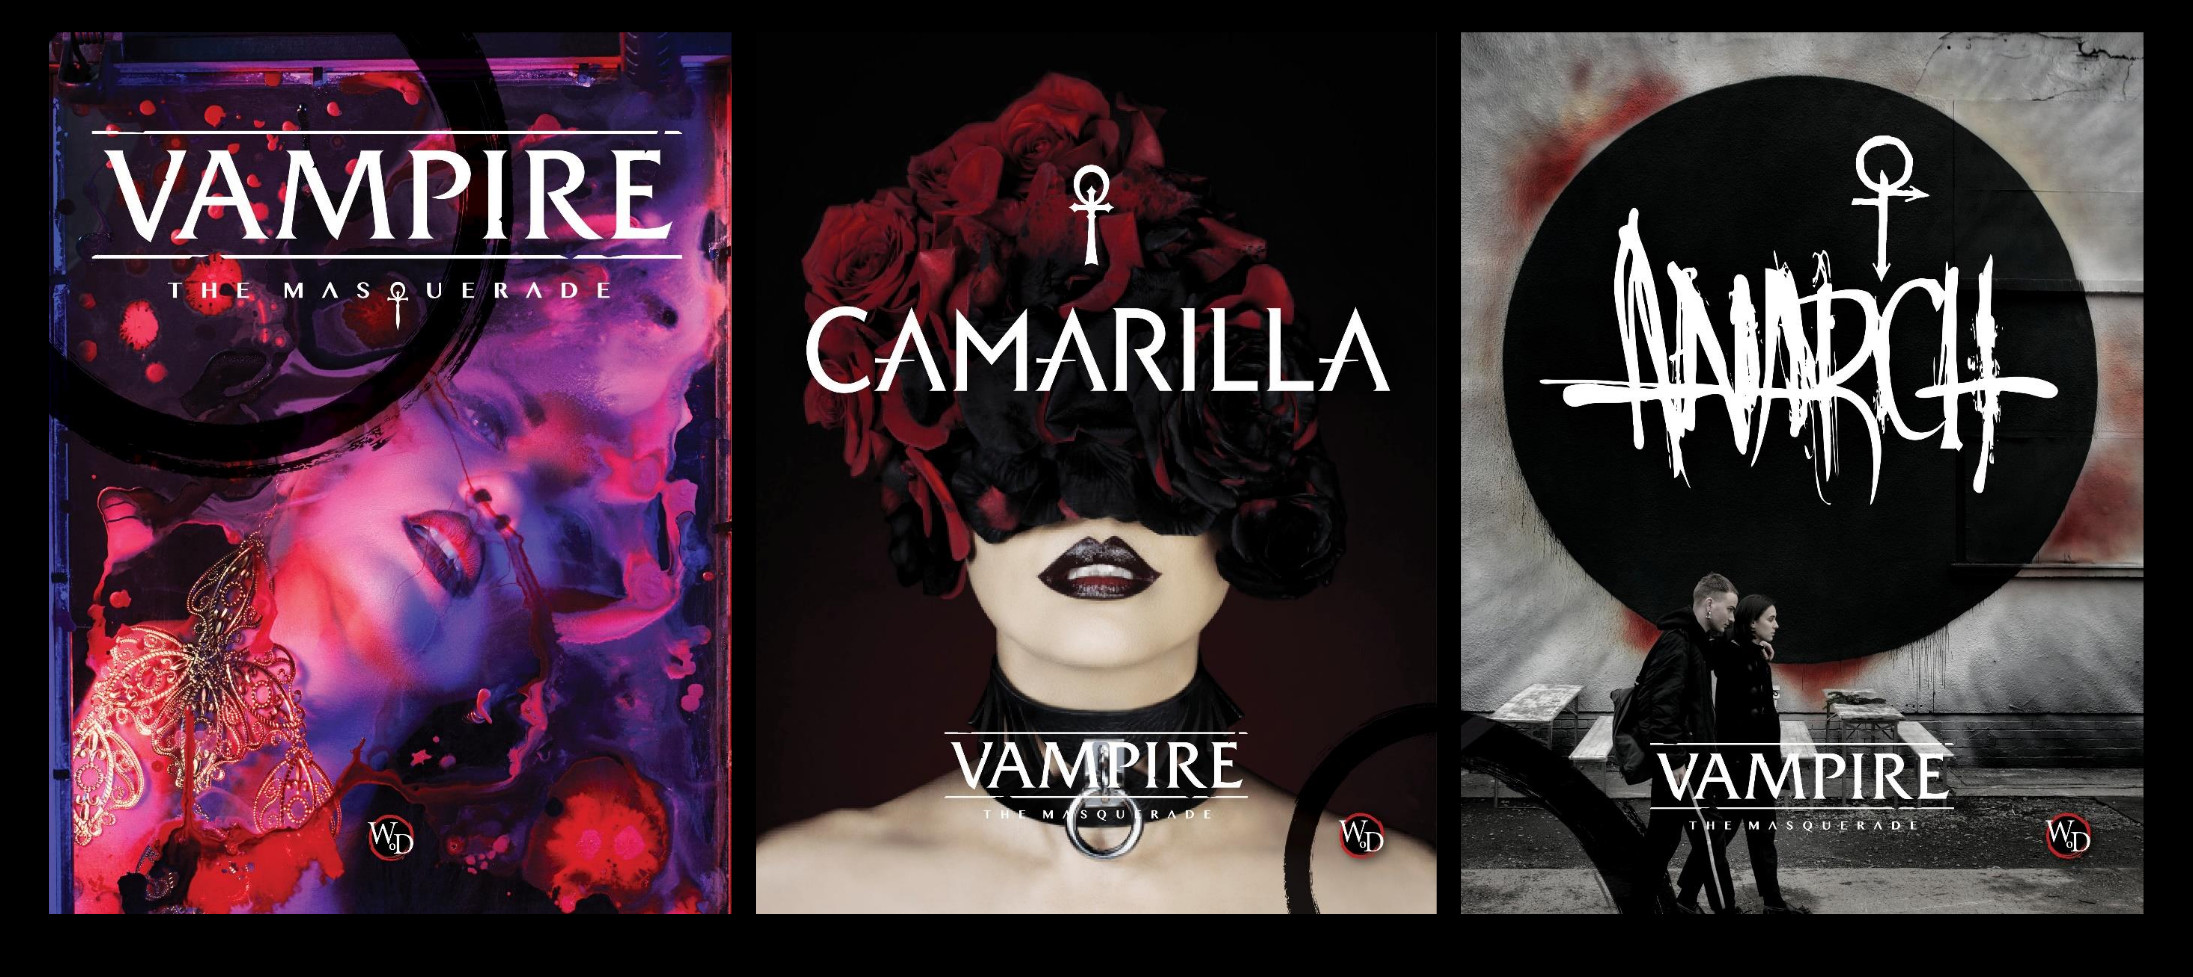 Get Bloody with V5 of Vampire: The Masquerade - oprainfall